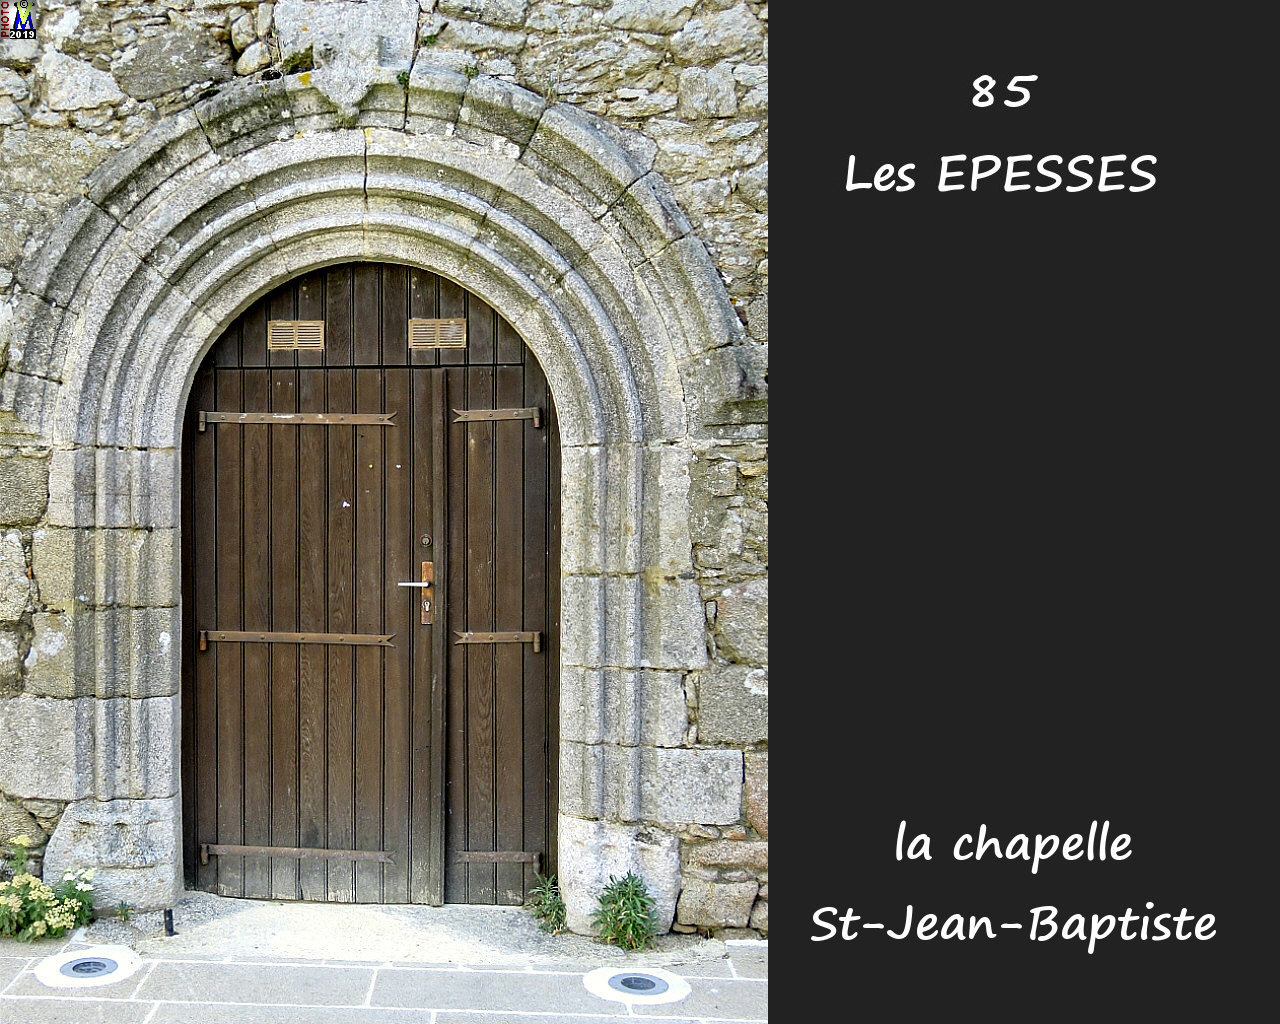 85EPESSES_chapelle_1010.jpg